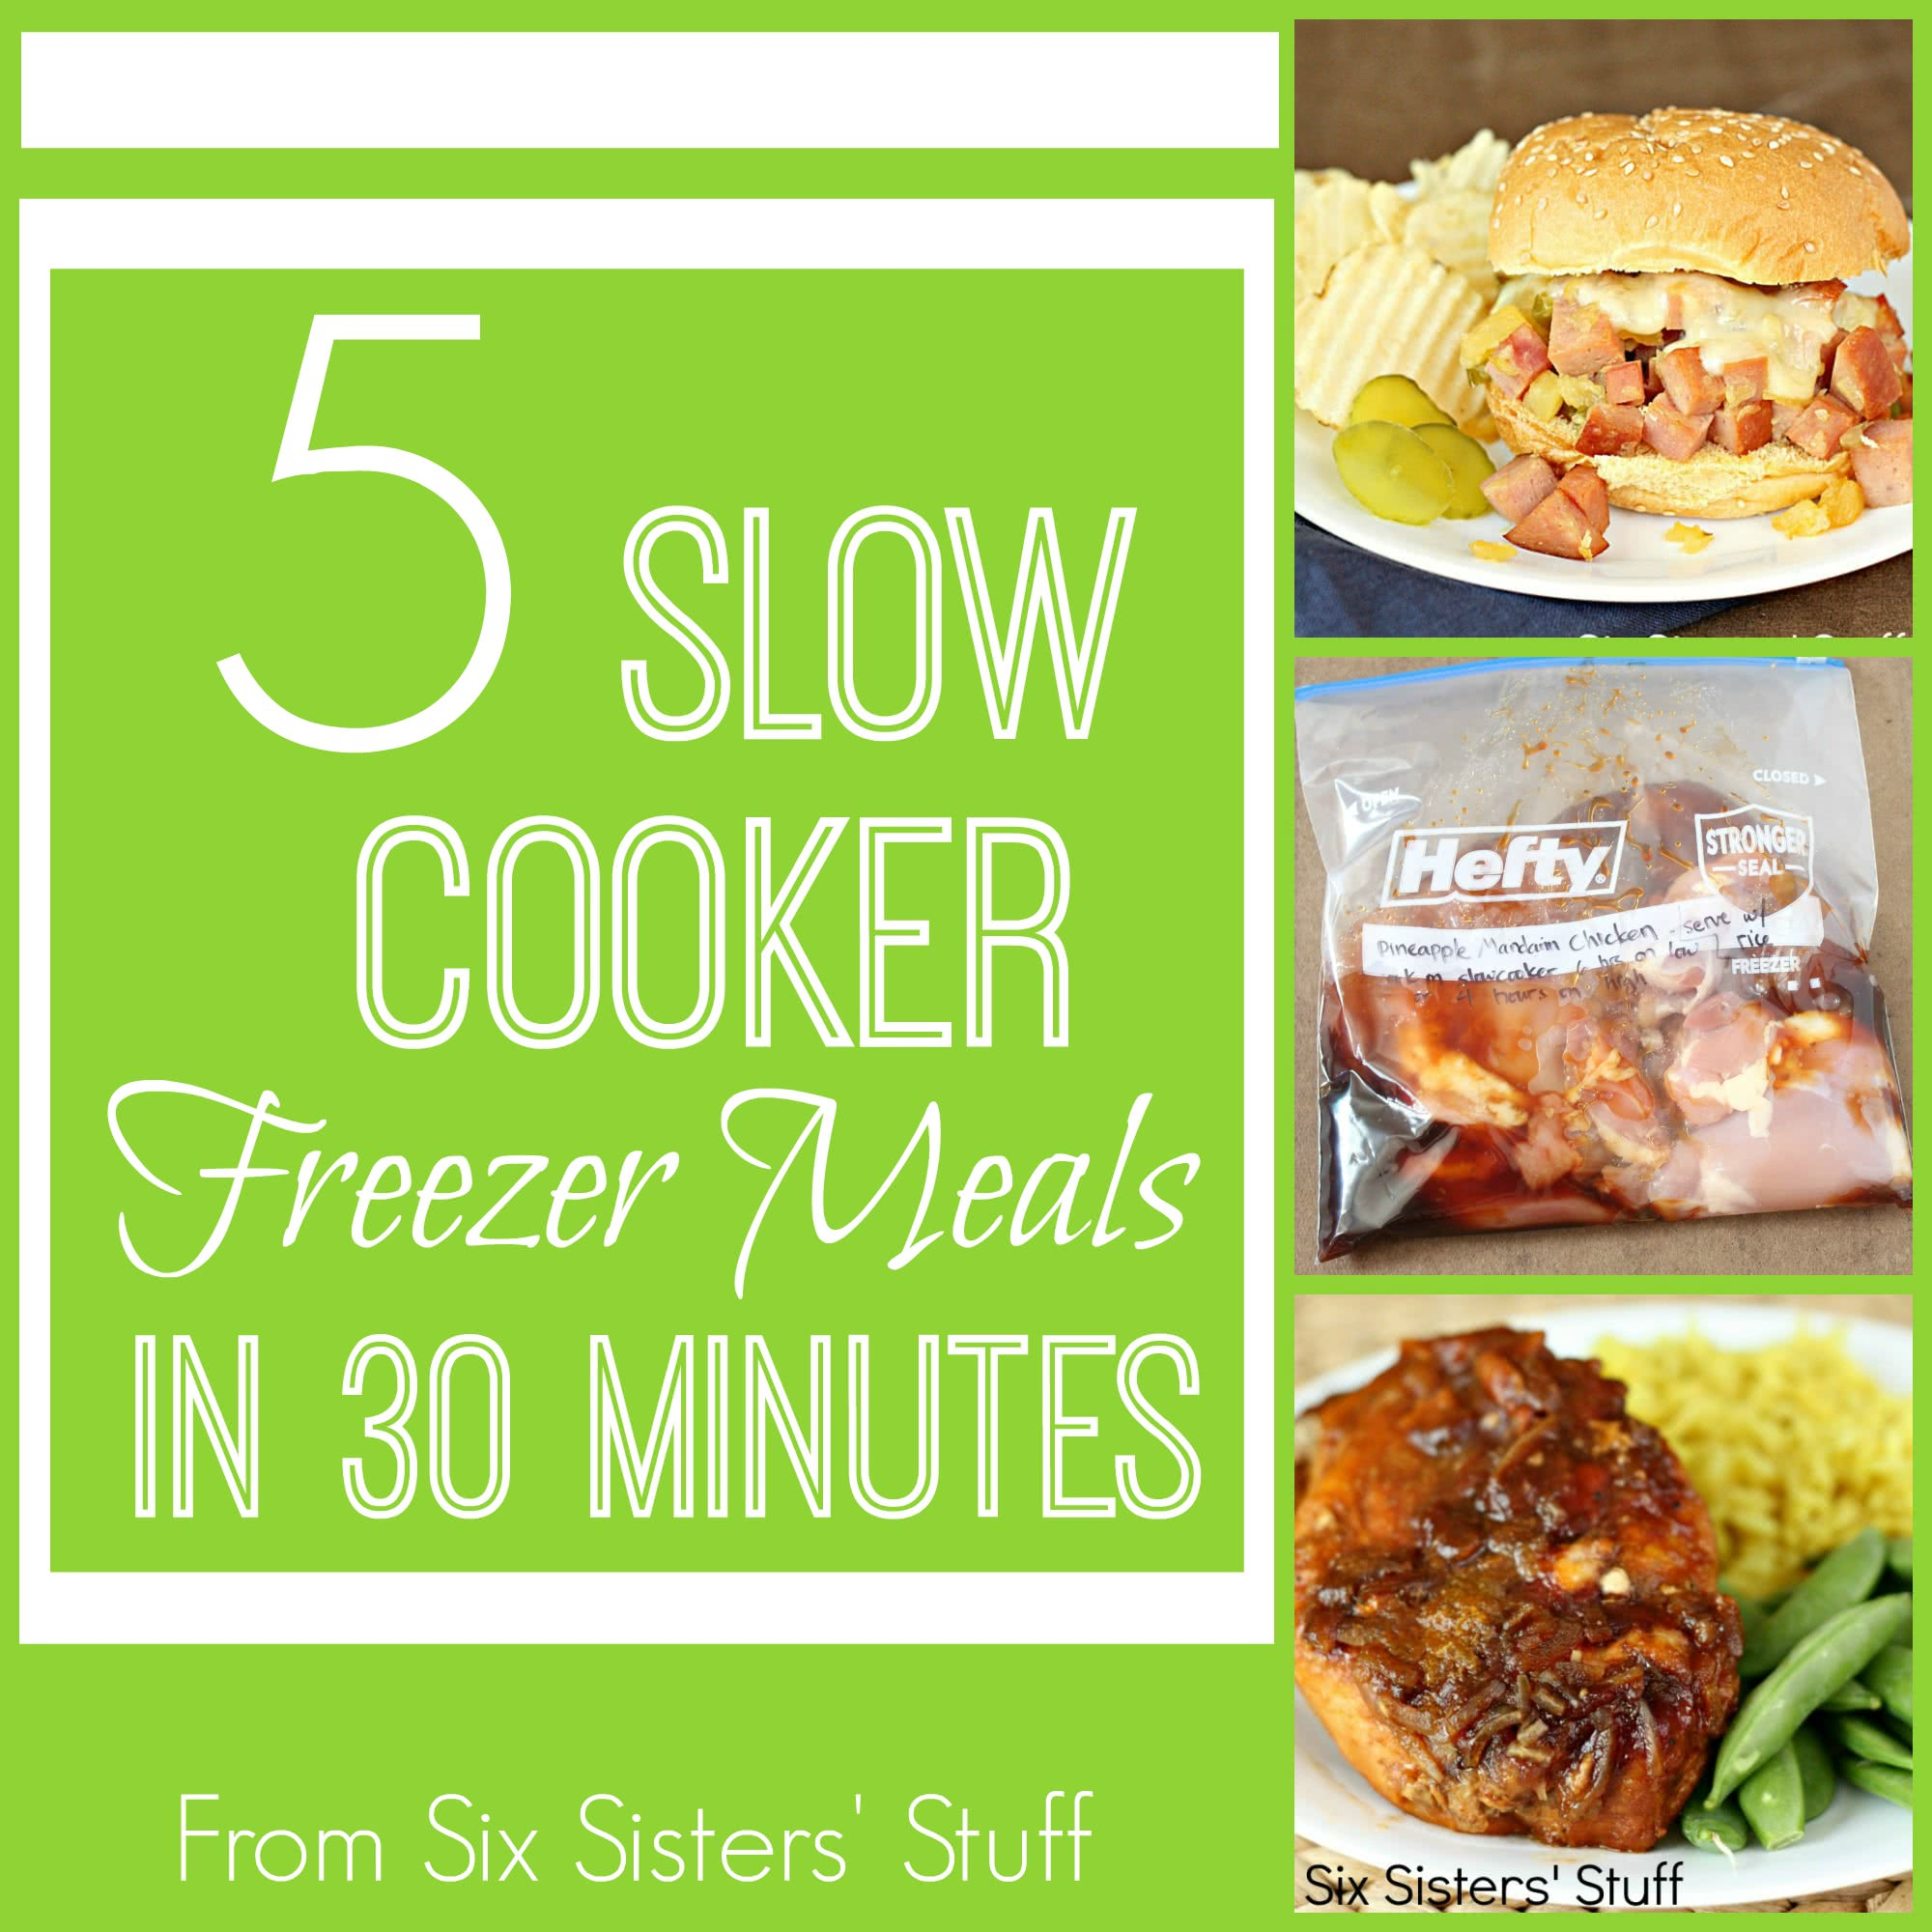 5 Slow Cooker Freezer Meals in 30 Minutes